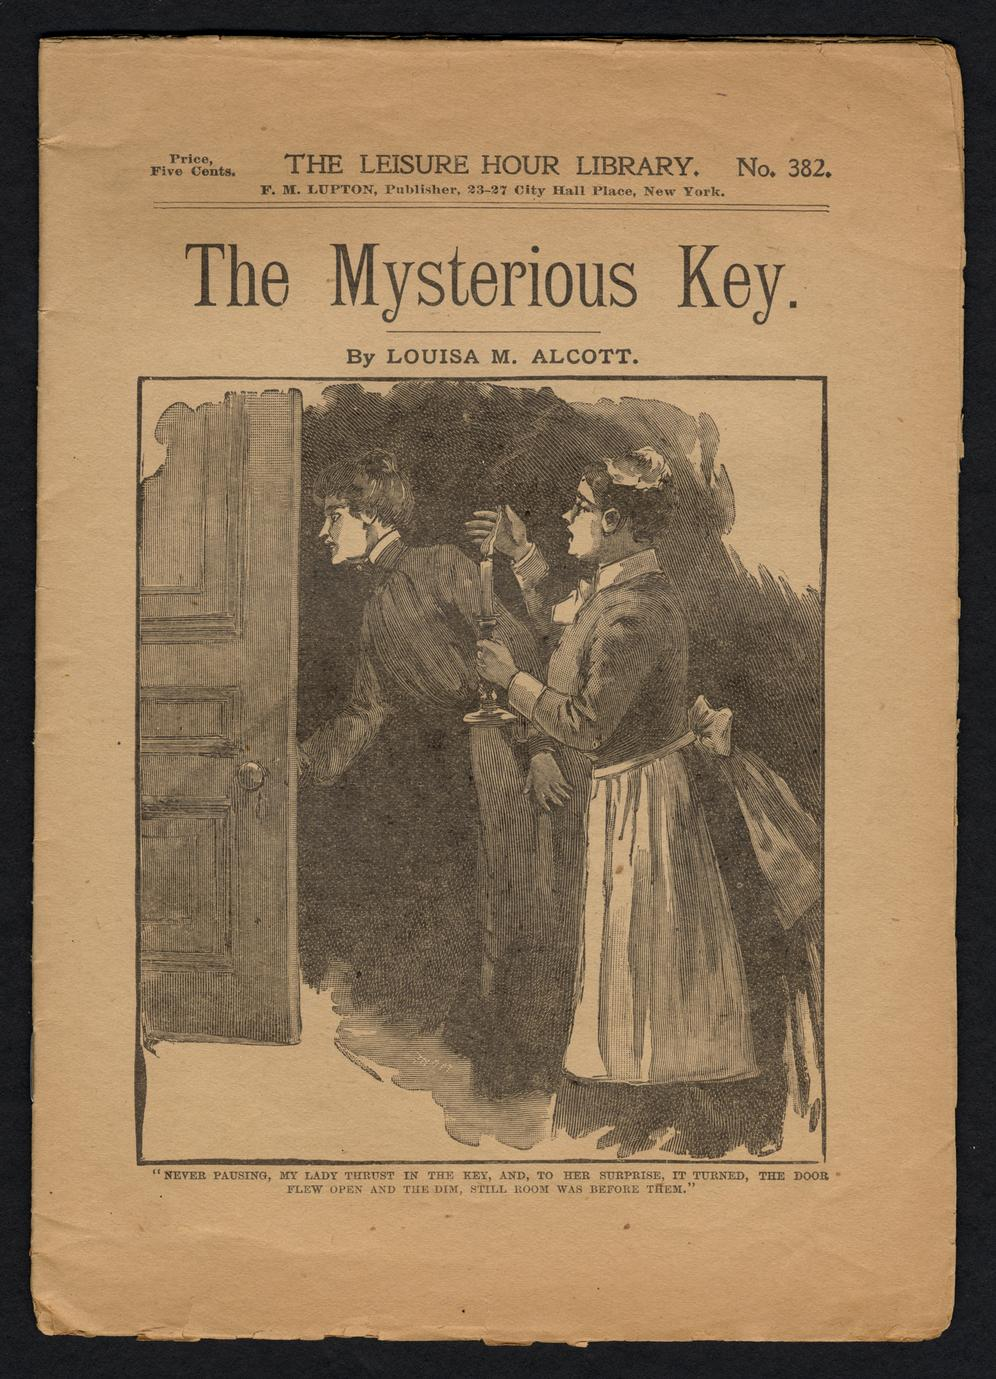 The mysterious key (1 of 2)